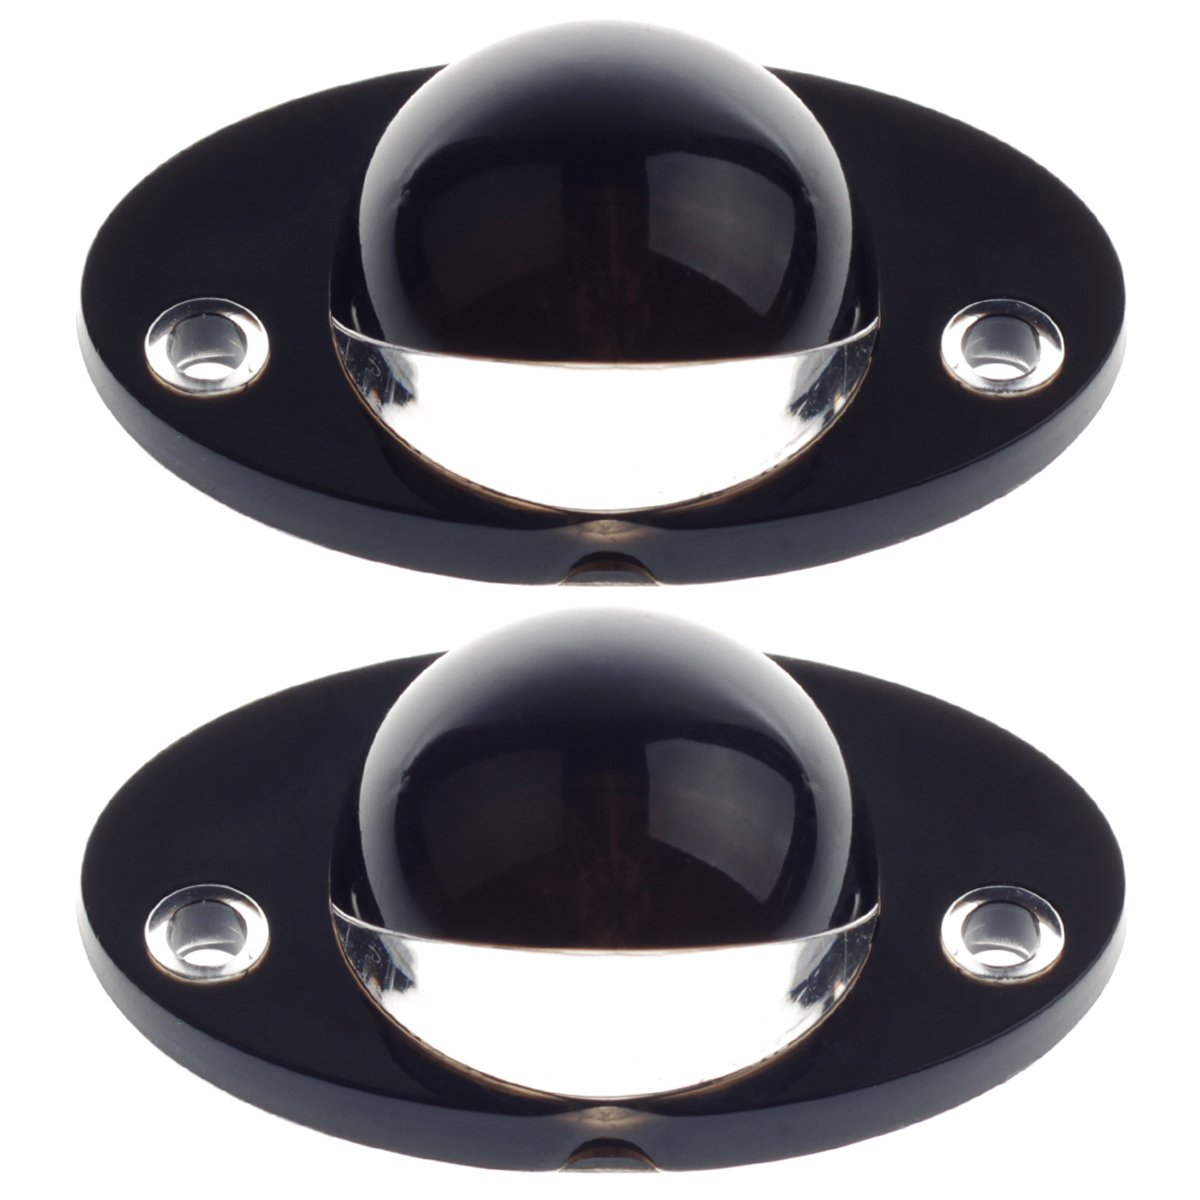 HERCOO License Plate Light Lamp Lens Compatiable with 1994-2002 Dodge Ram 1500 2500 3500 Aftermarket Replacement, Qty:2